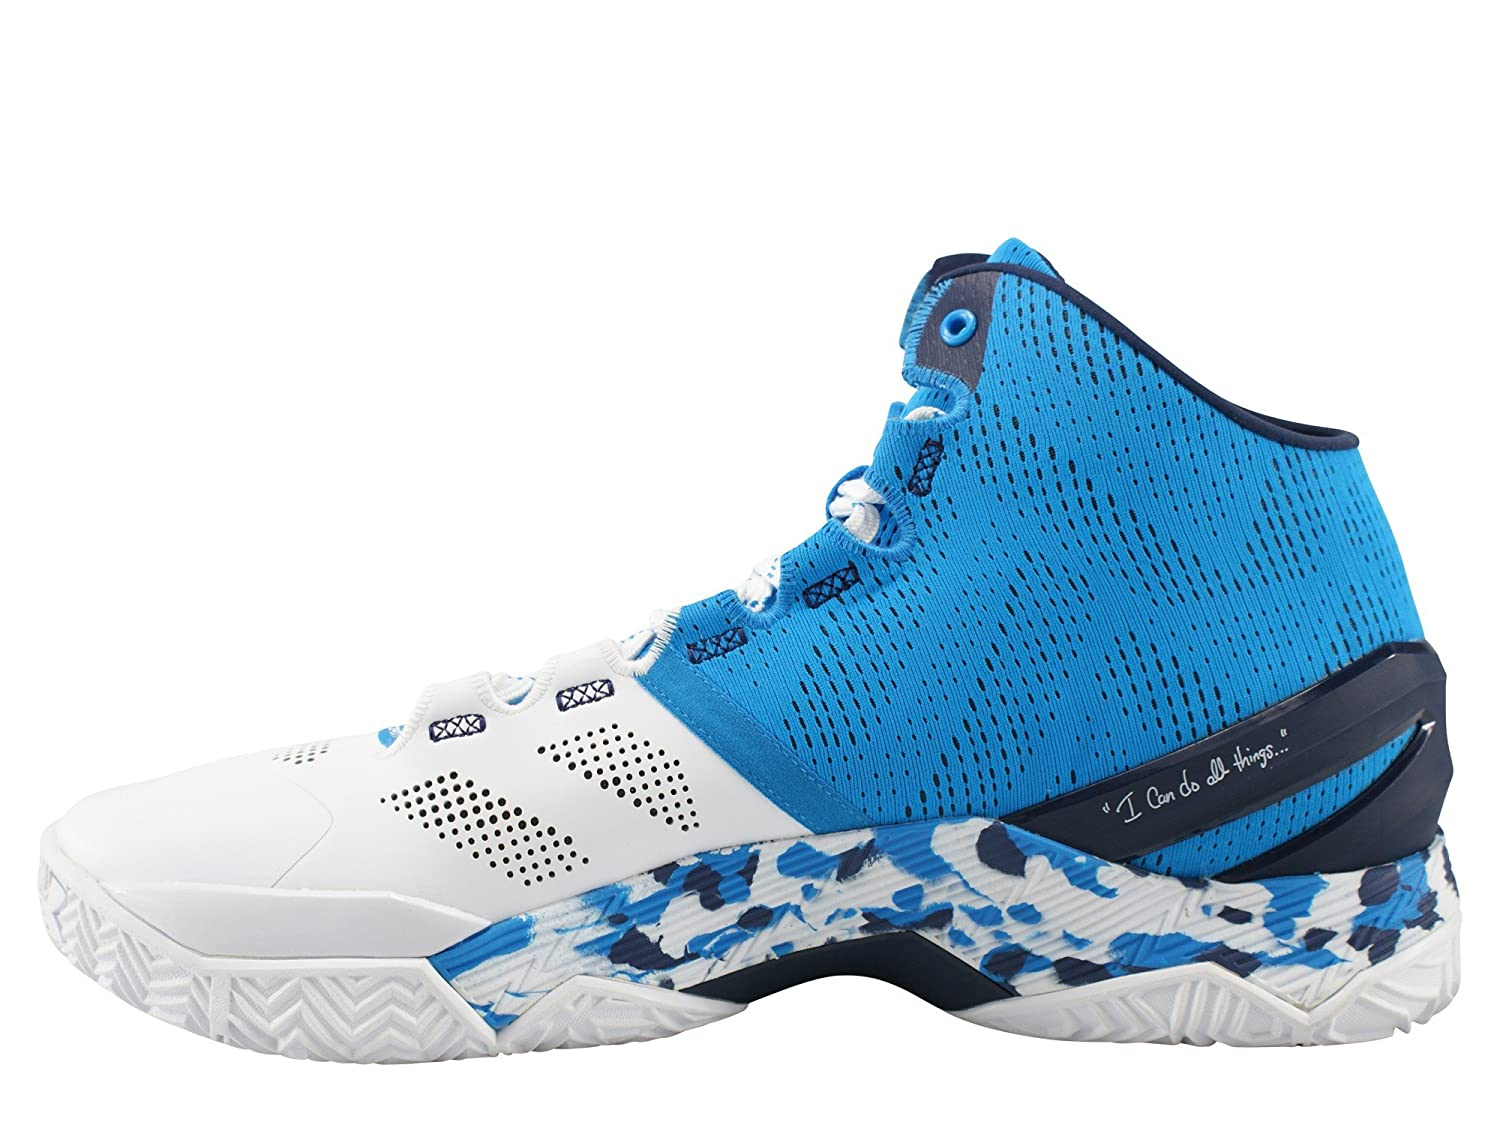 Girls' Penny Hardaway Lifestyle Shoes. Nike